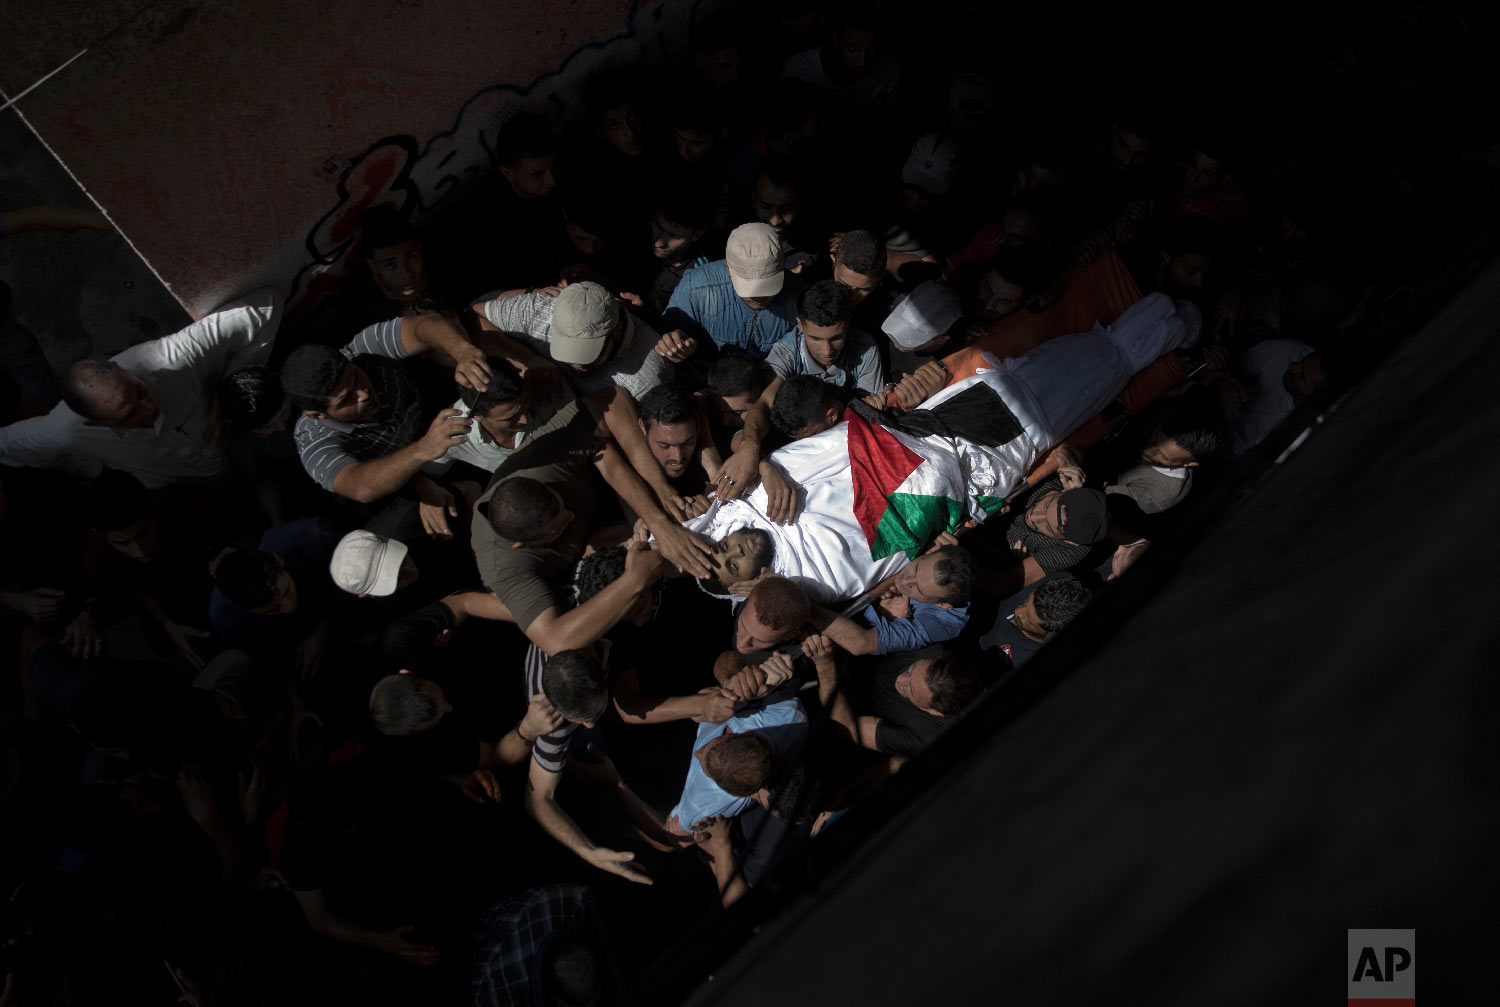 The Year in Photos: Middle East — AP Images Spotlight